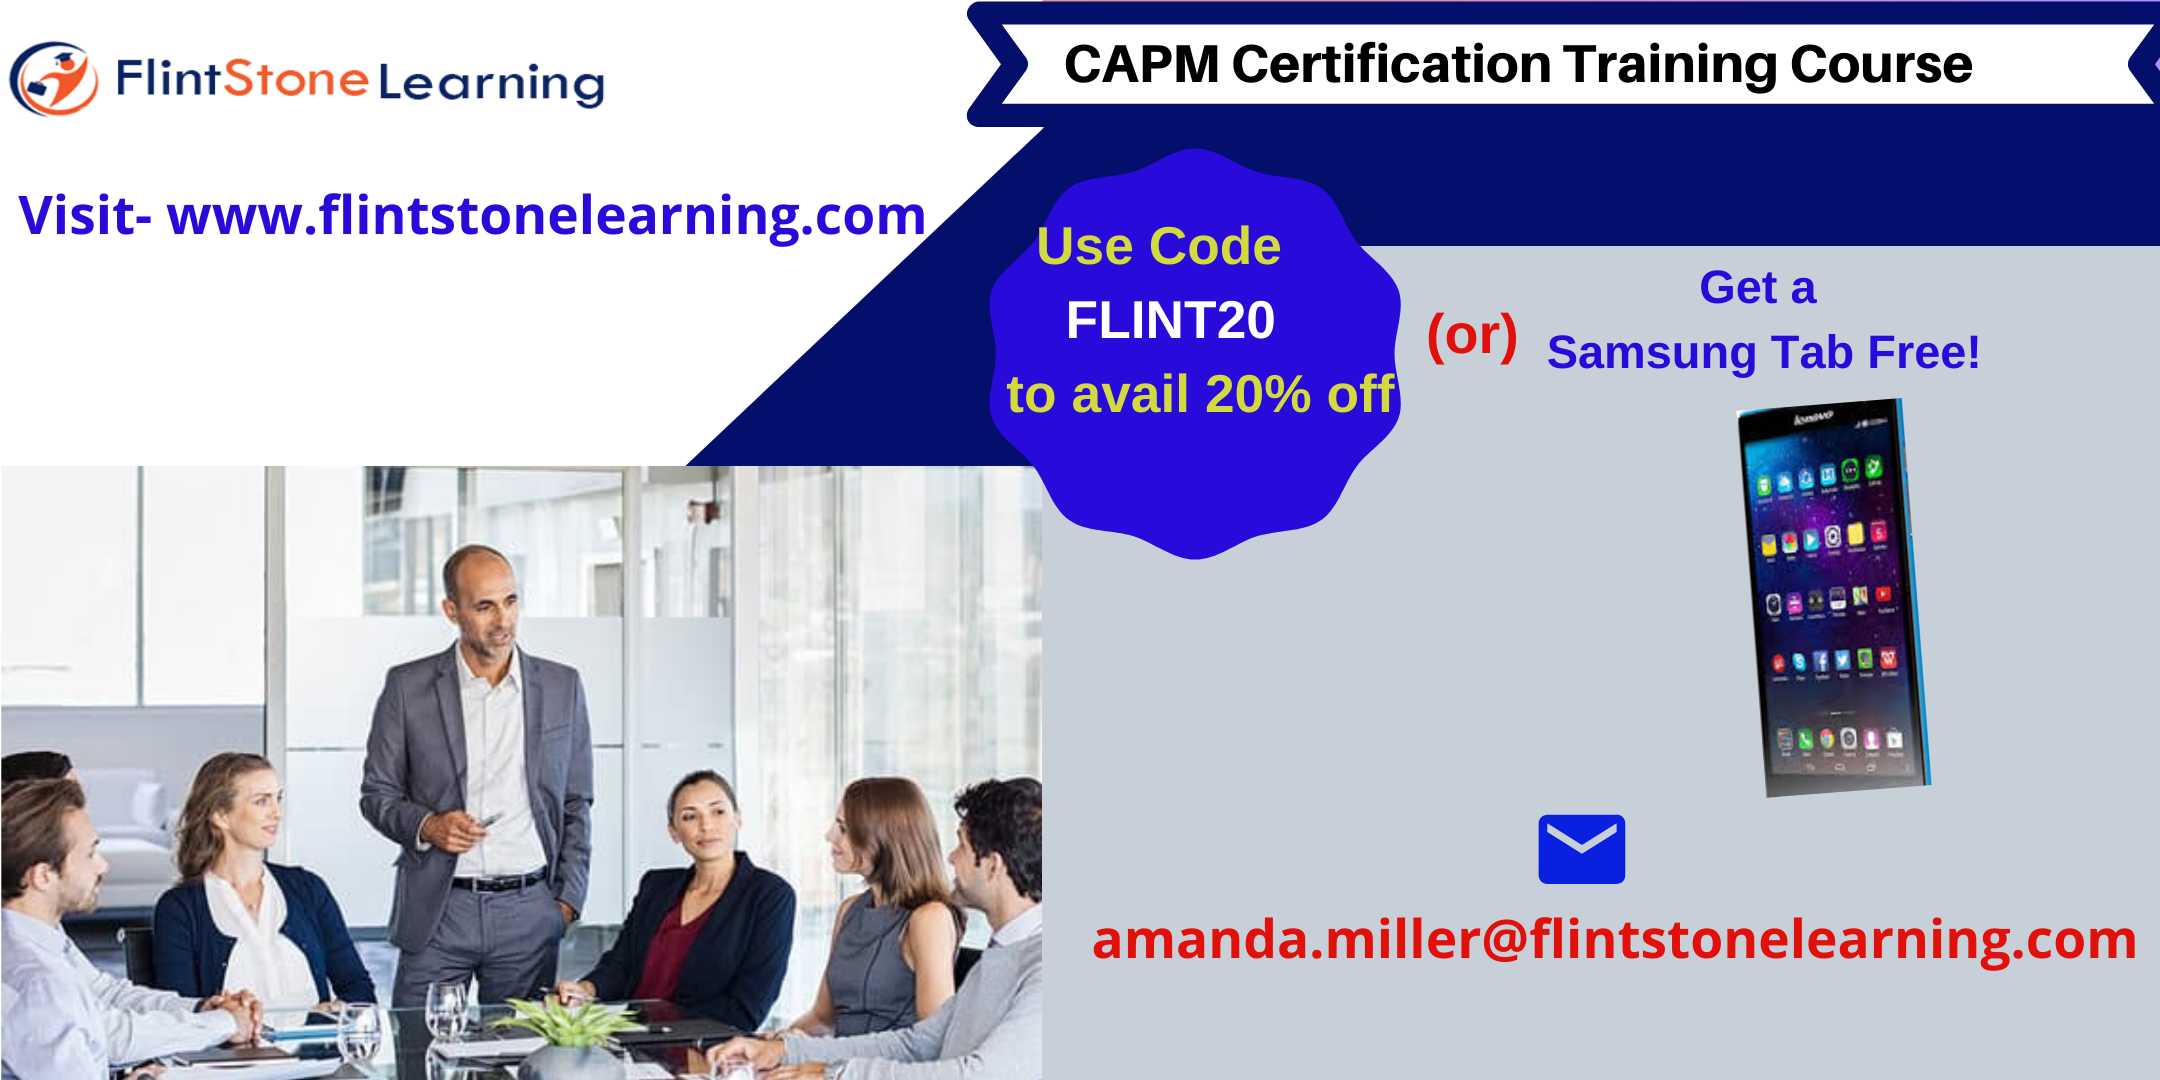 CAPM Certification Training Course in Somerville, MA